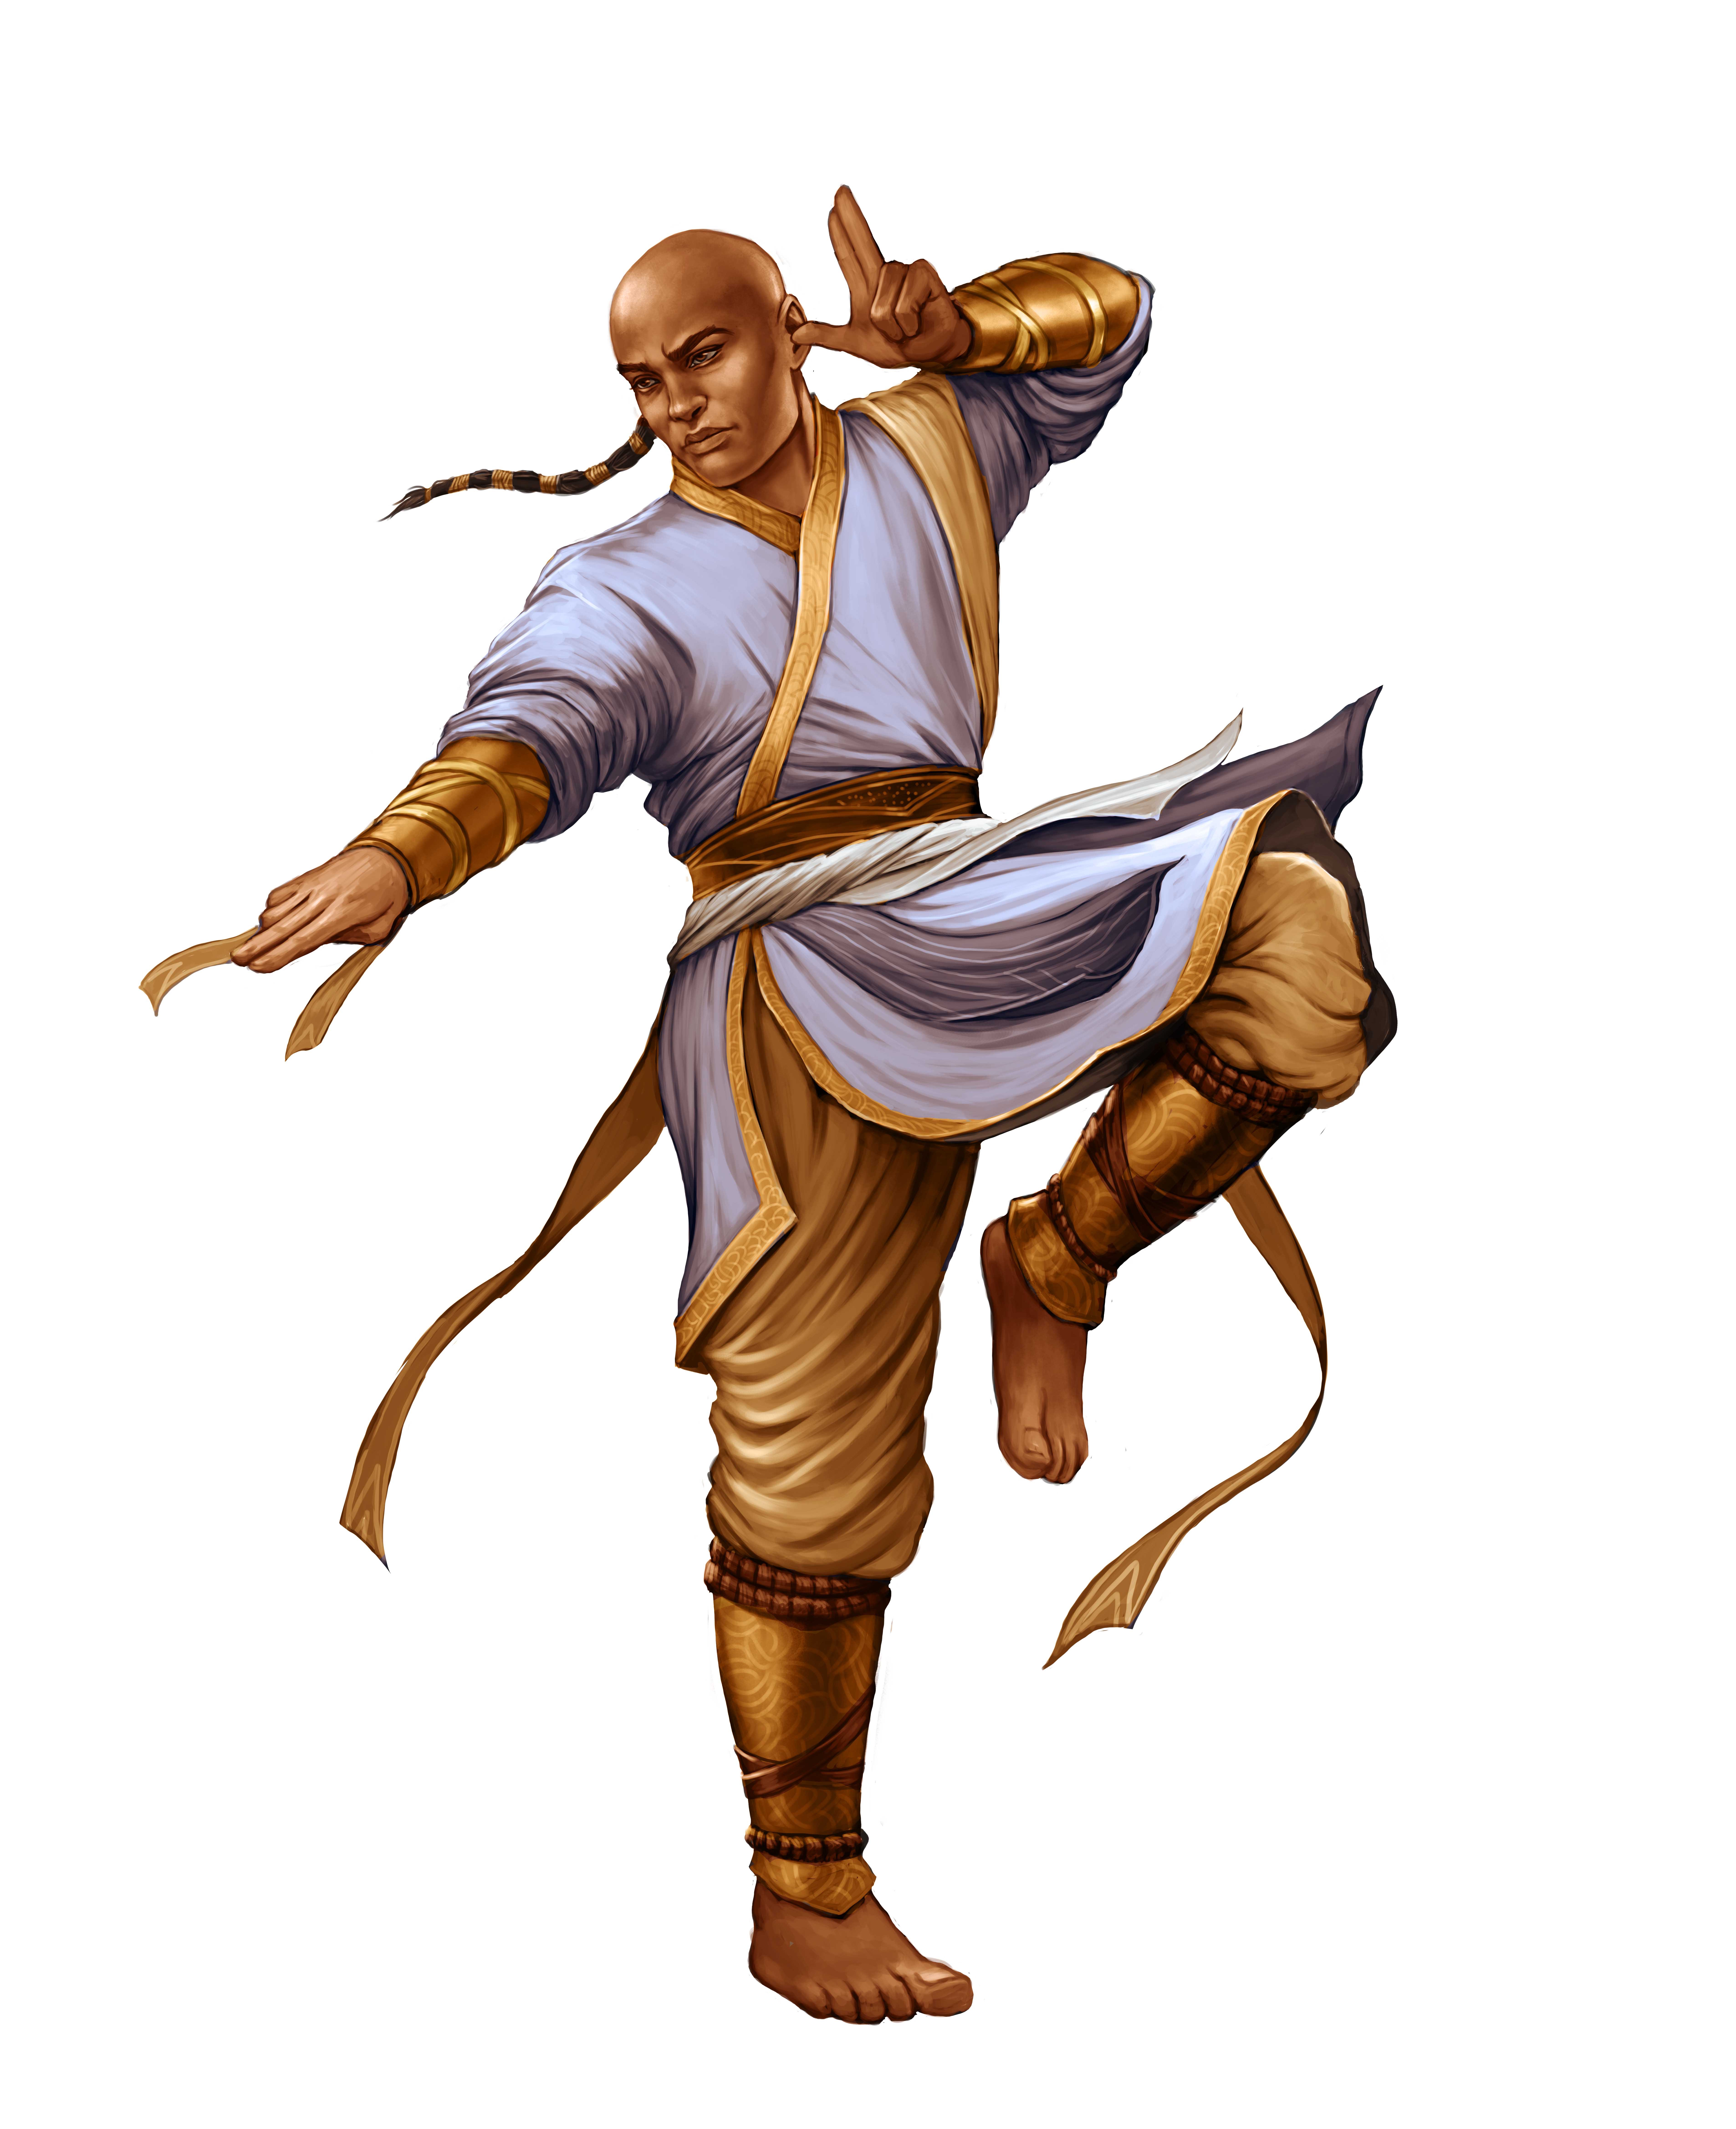 Irori, god of knowledge and self-perfection, in a combat pose.